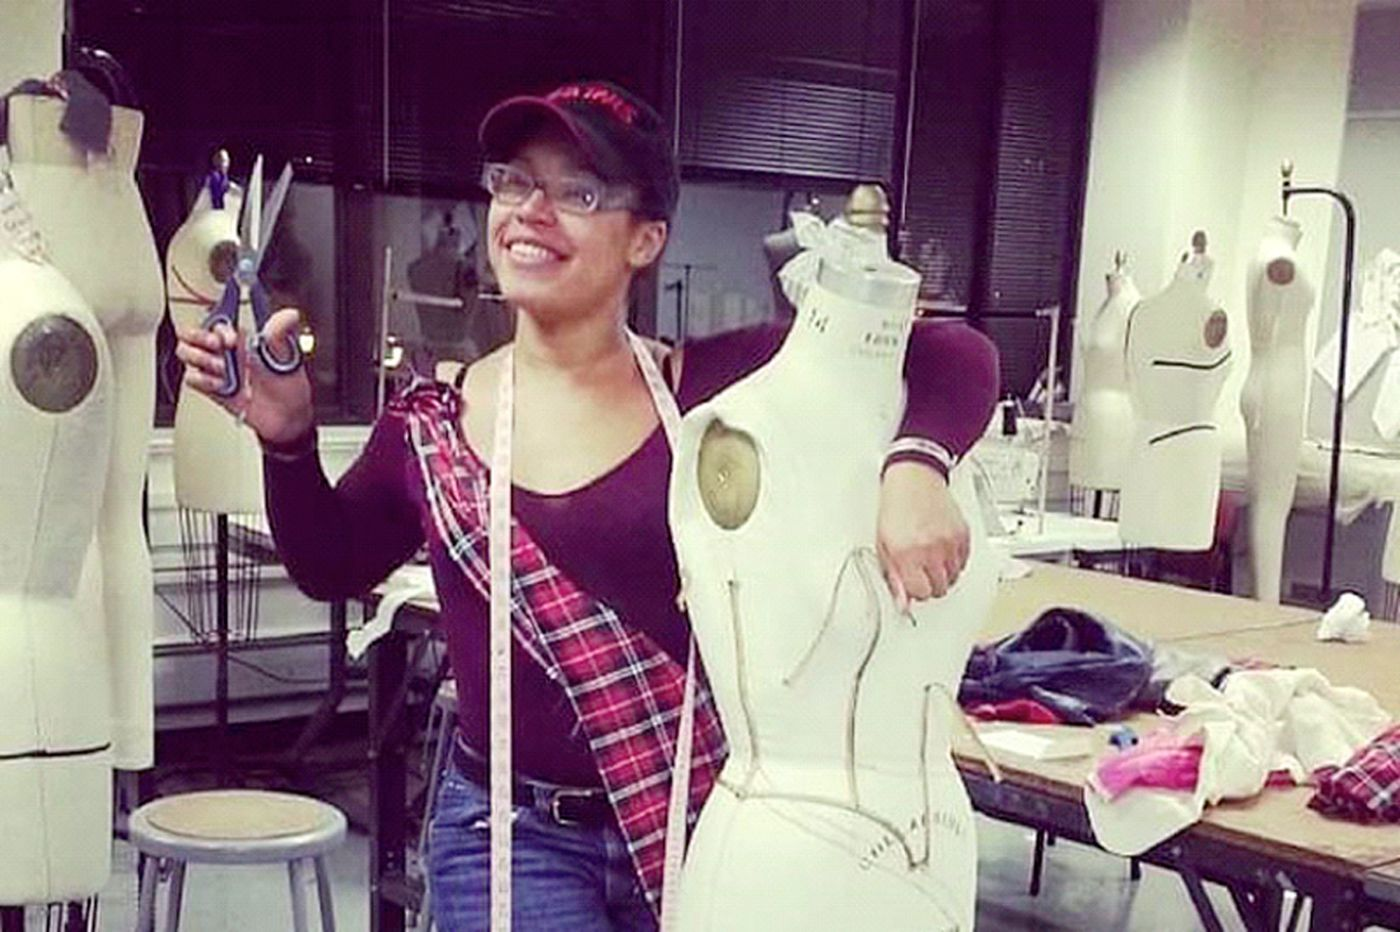 Young Germantown fashionista creates jaw-dropping Mummer captain's costume